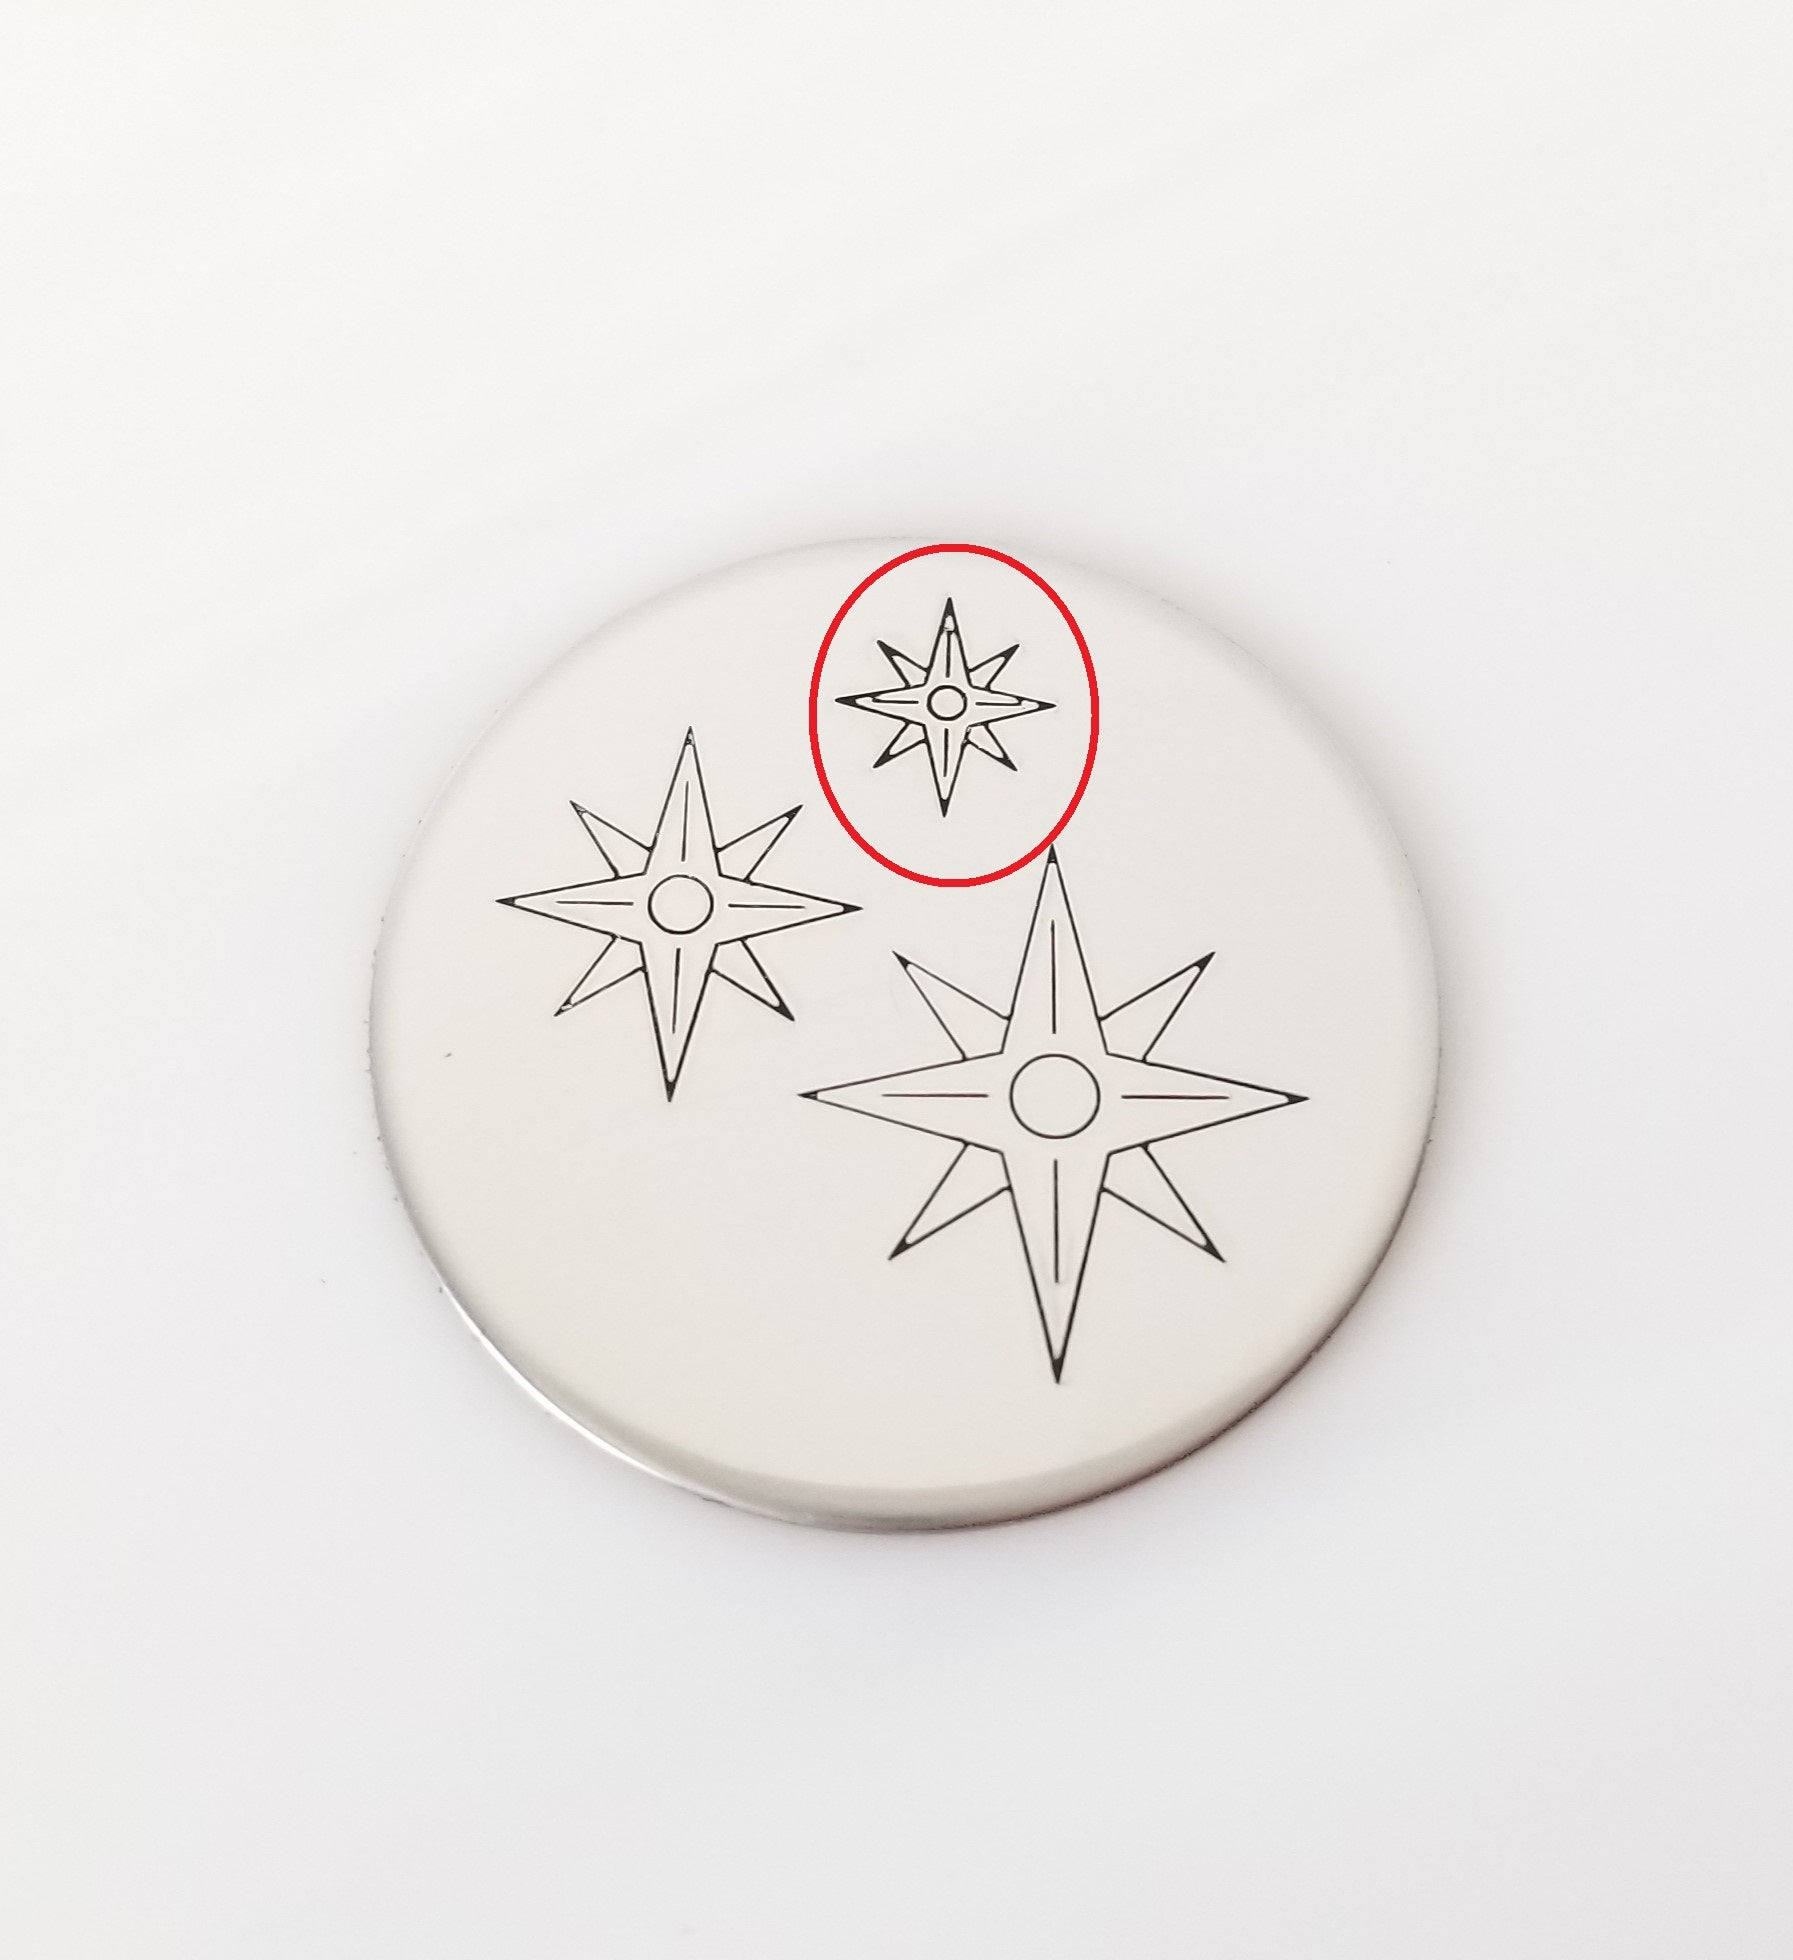 Compass without Directional Lettering